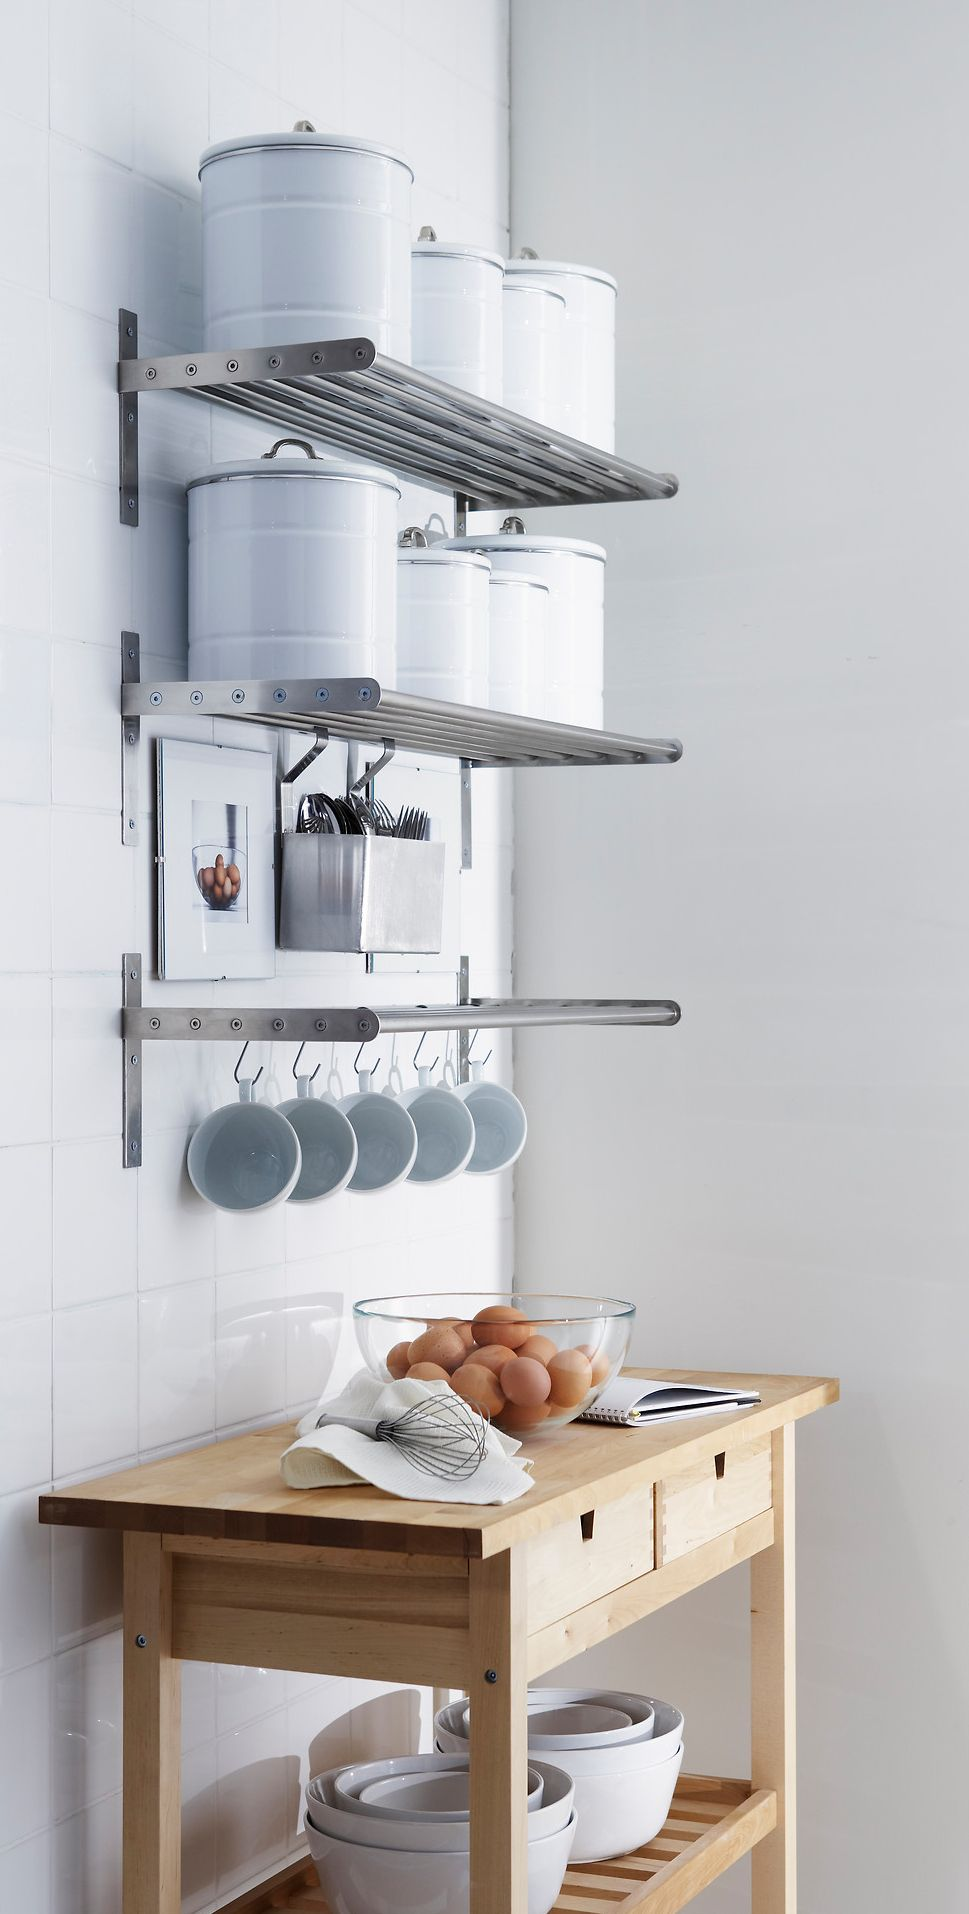 9 Clever Ways to Organize Your Kitchen